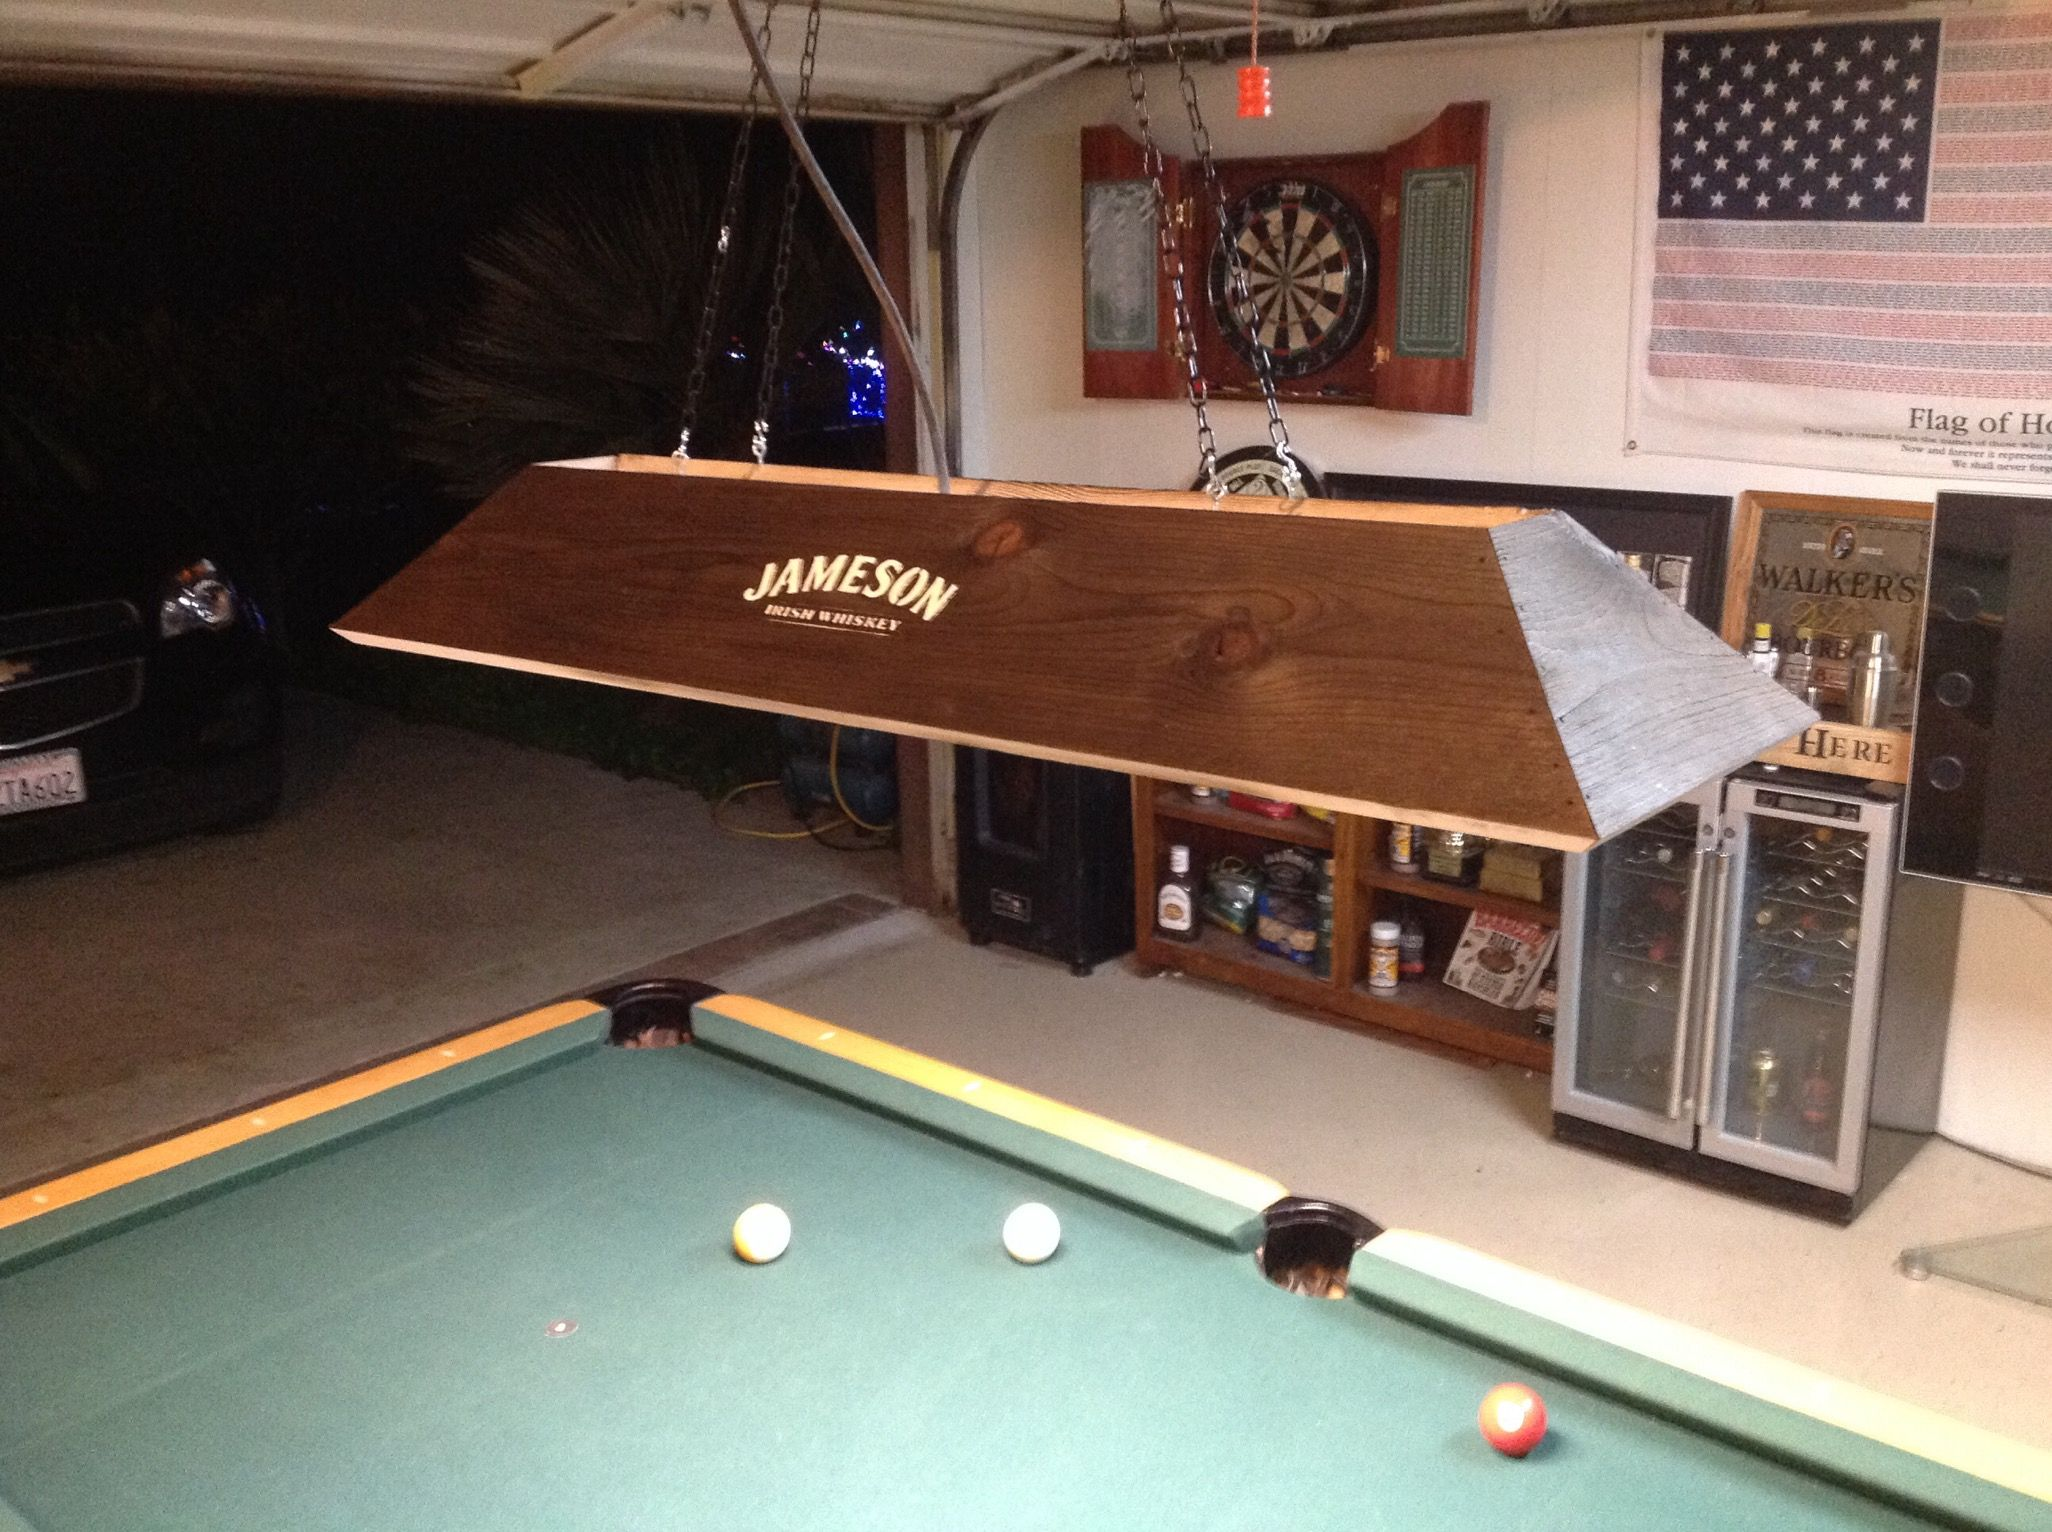 Jameson Irish Whiskey Pool Table Light